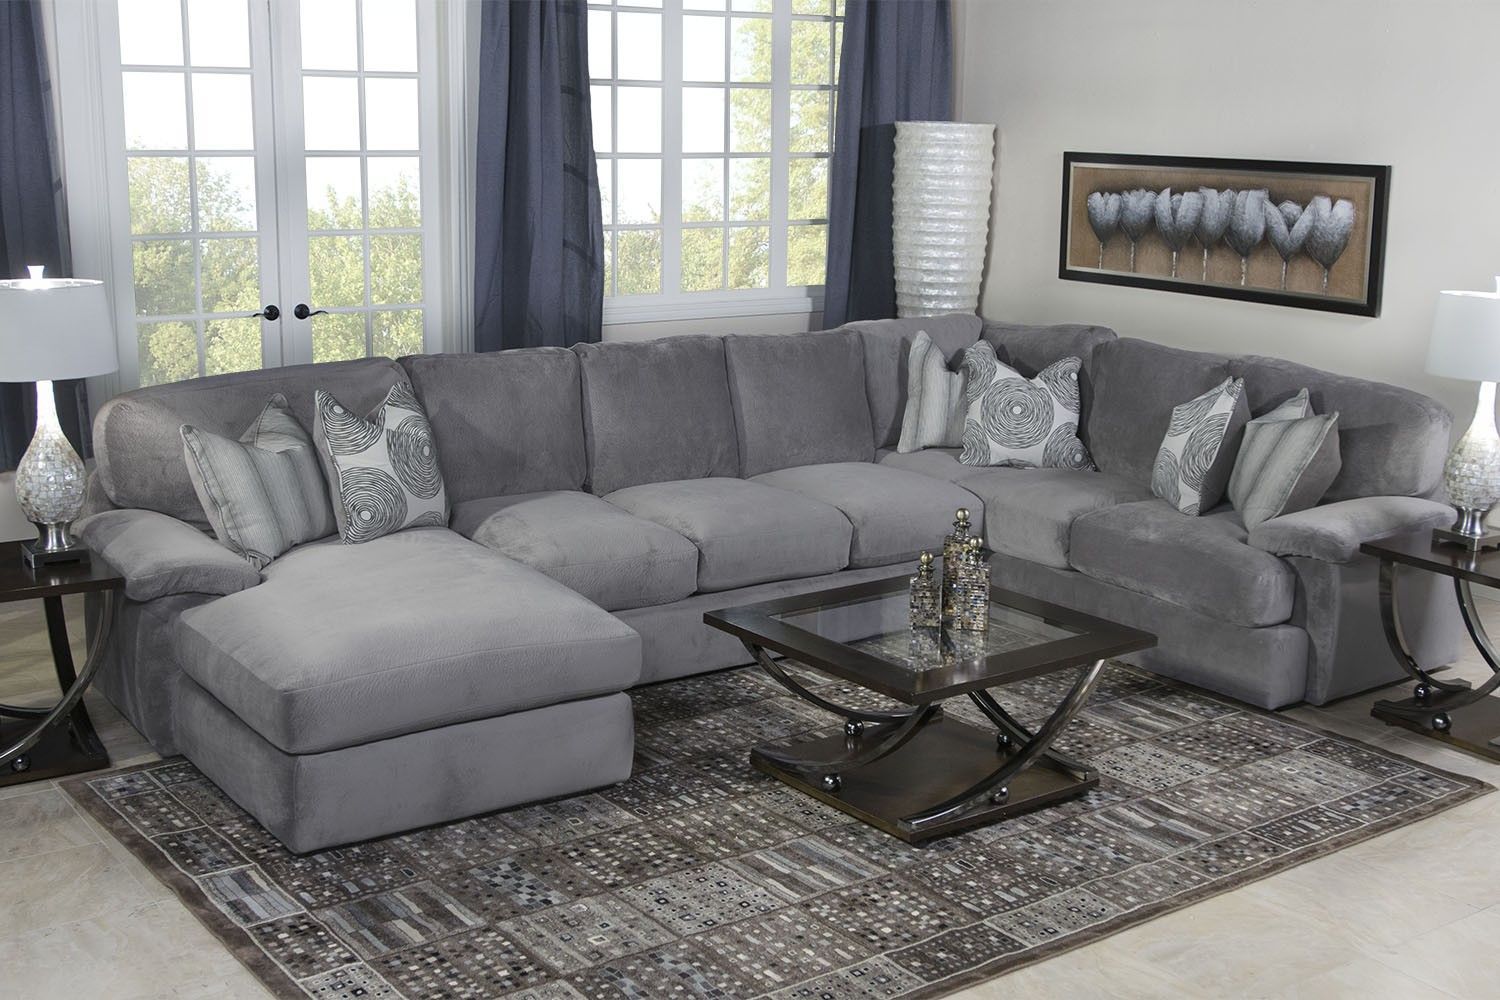 Key west sectional living room in gray living room mor for Living room sectionals